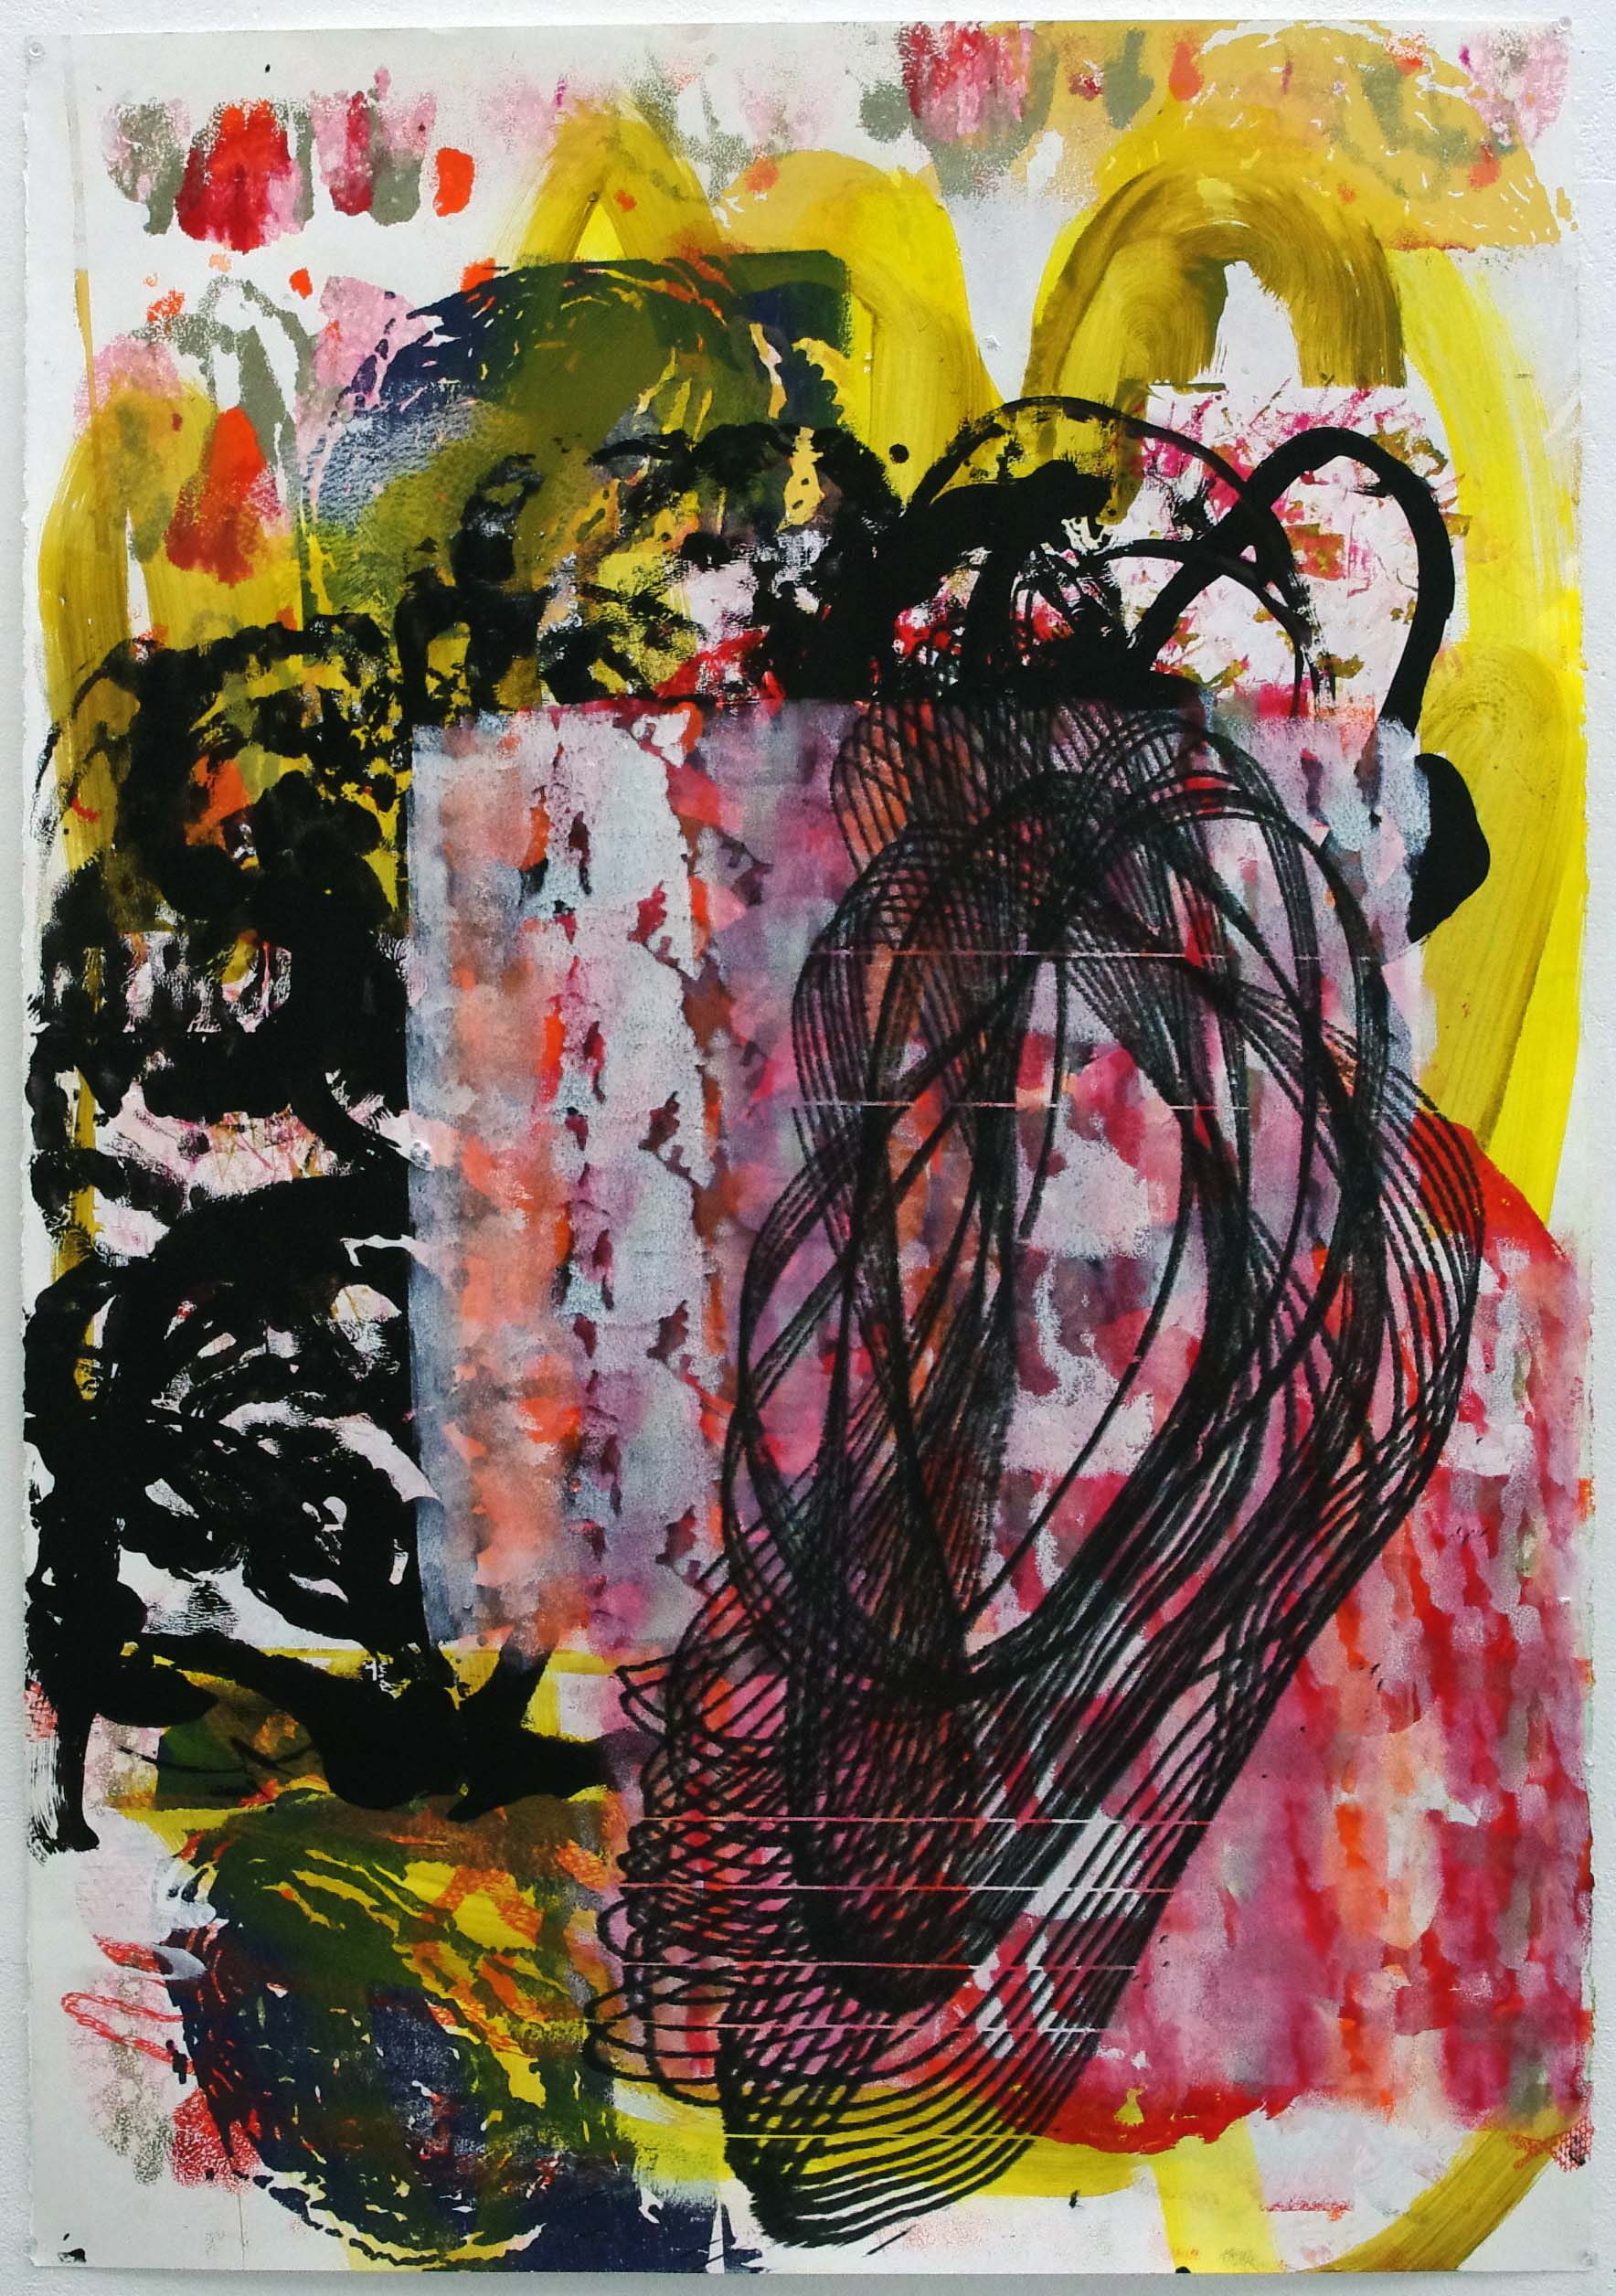 IMGP3444; 110x 75 cm; acrylic and screen print on paper